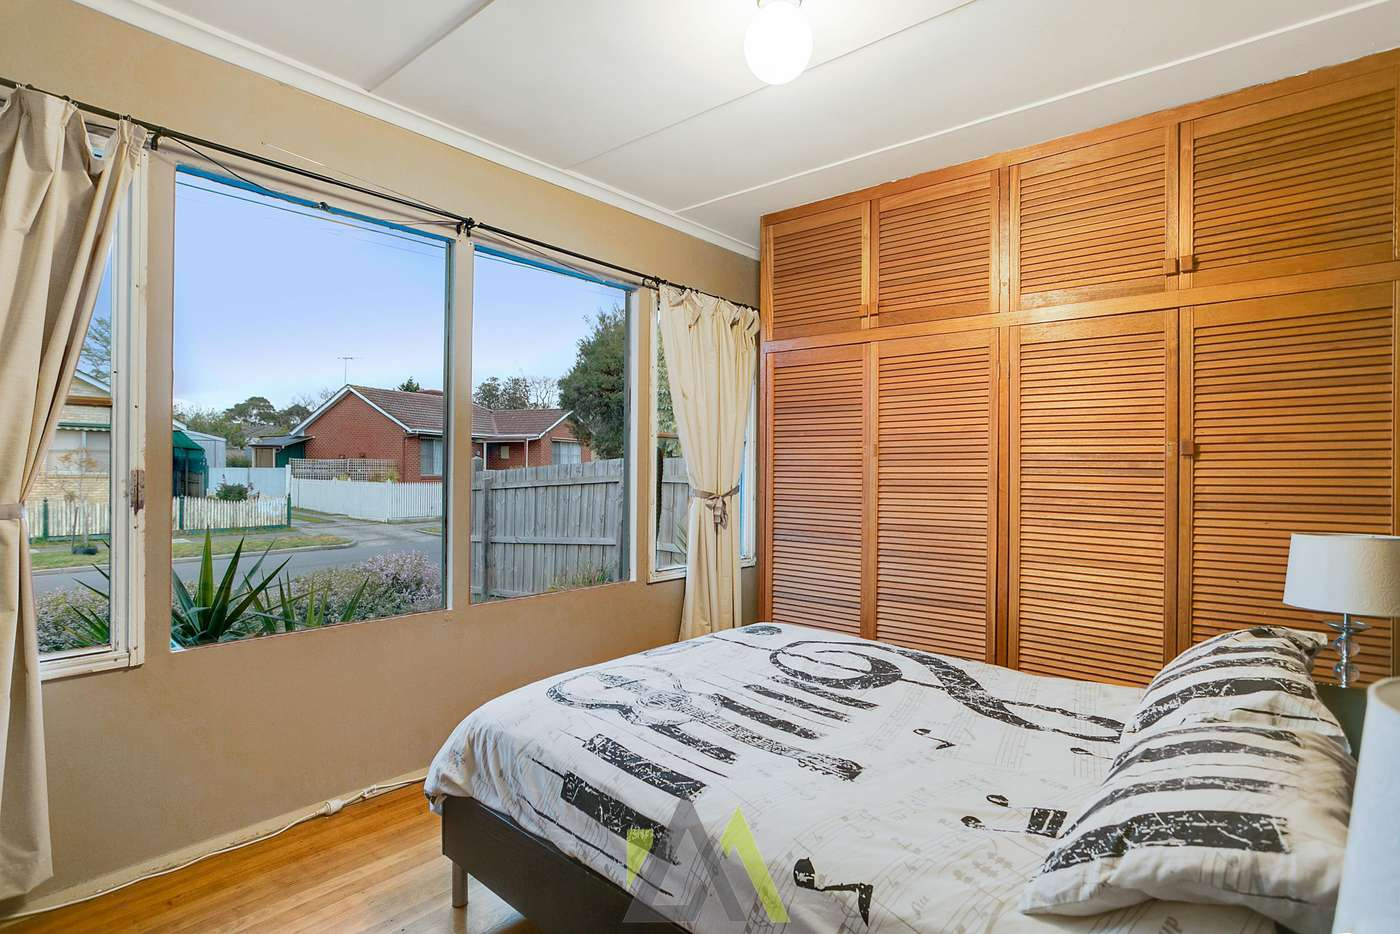 Seventh view of Homely house listing, 3 Burdett Street, Frankston North VIC 3200